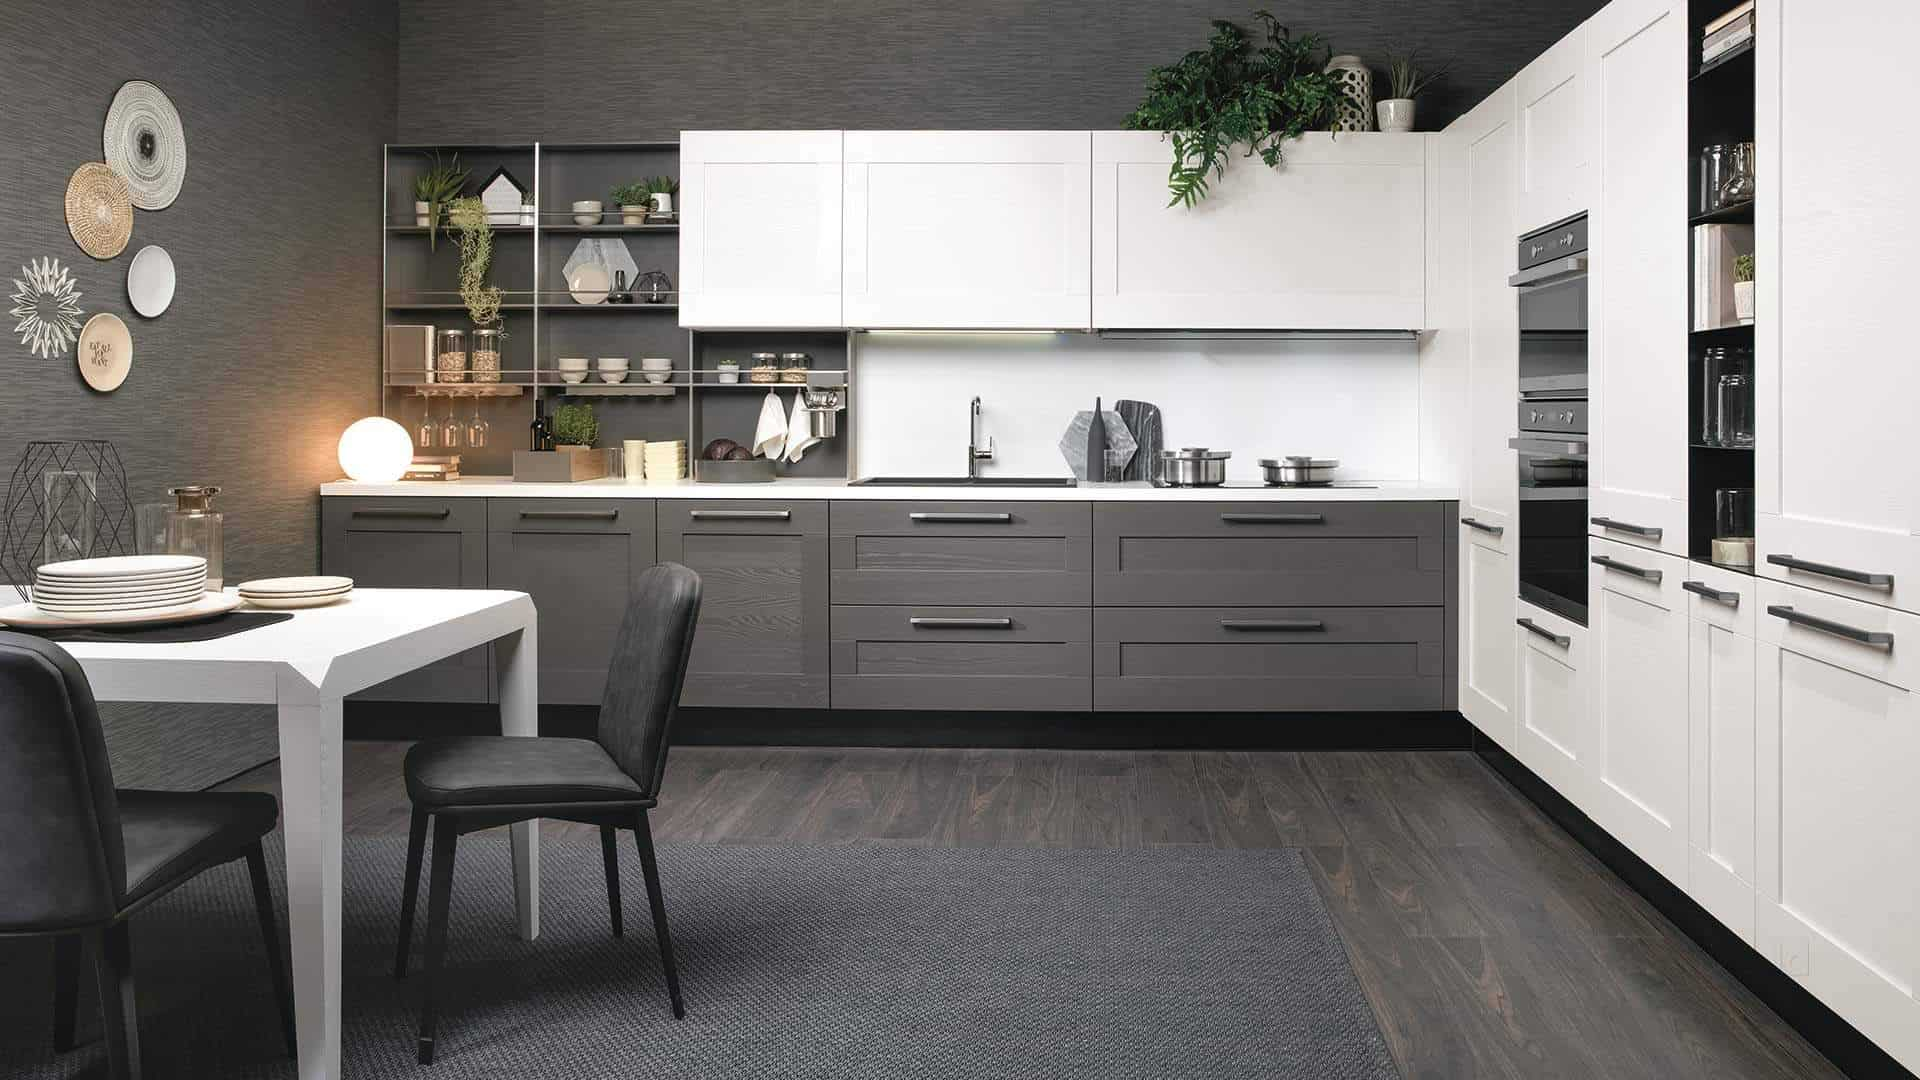 Top Lube Modular Kitchen Dealers in Yerappa Garden - Best ...